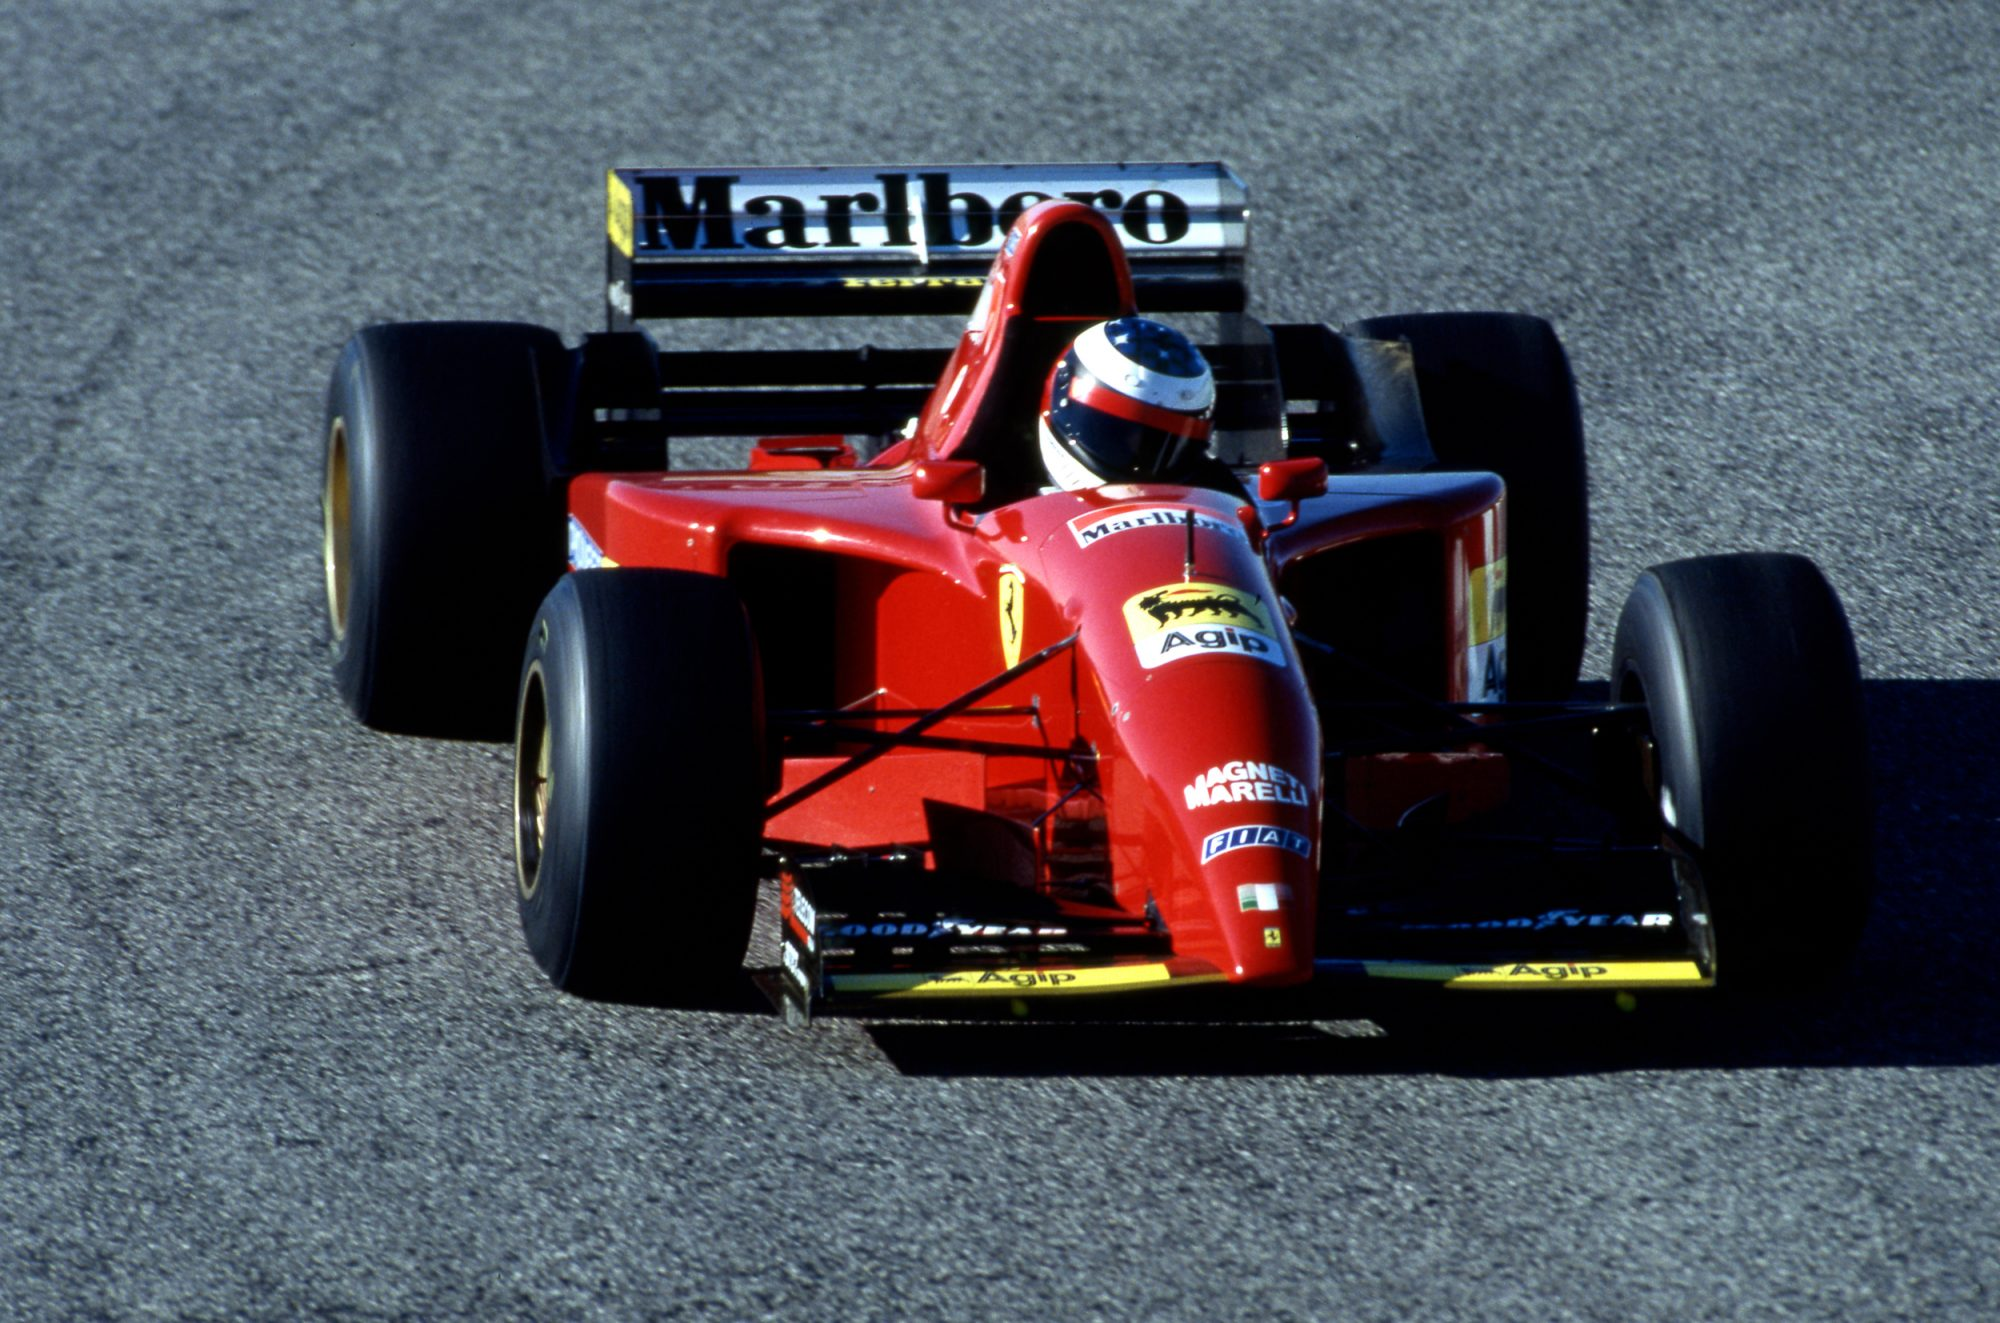 For Sale This Is The First Ferrari F1 Racing Car Driven By Michael Schumacher Autoevolution